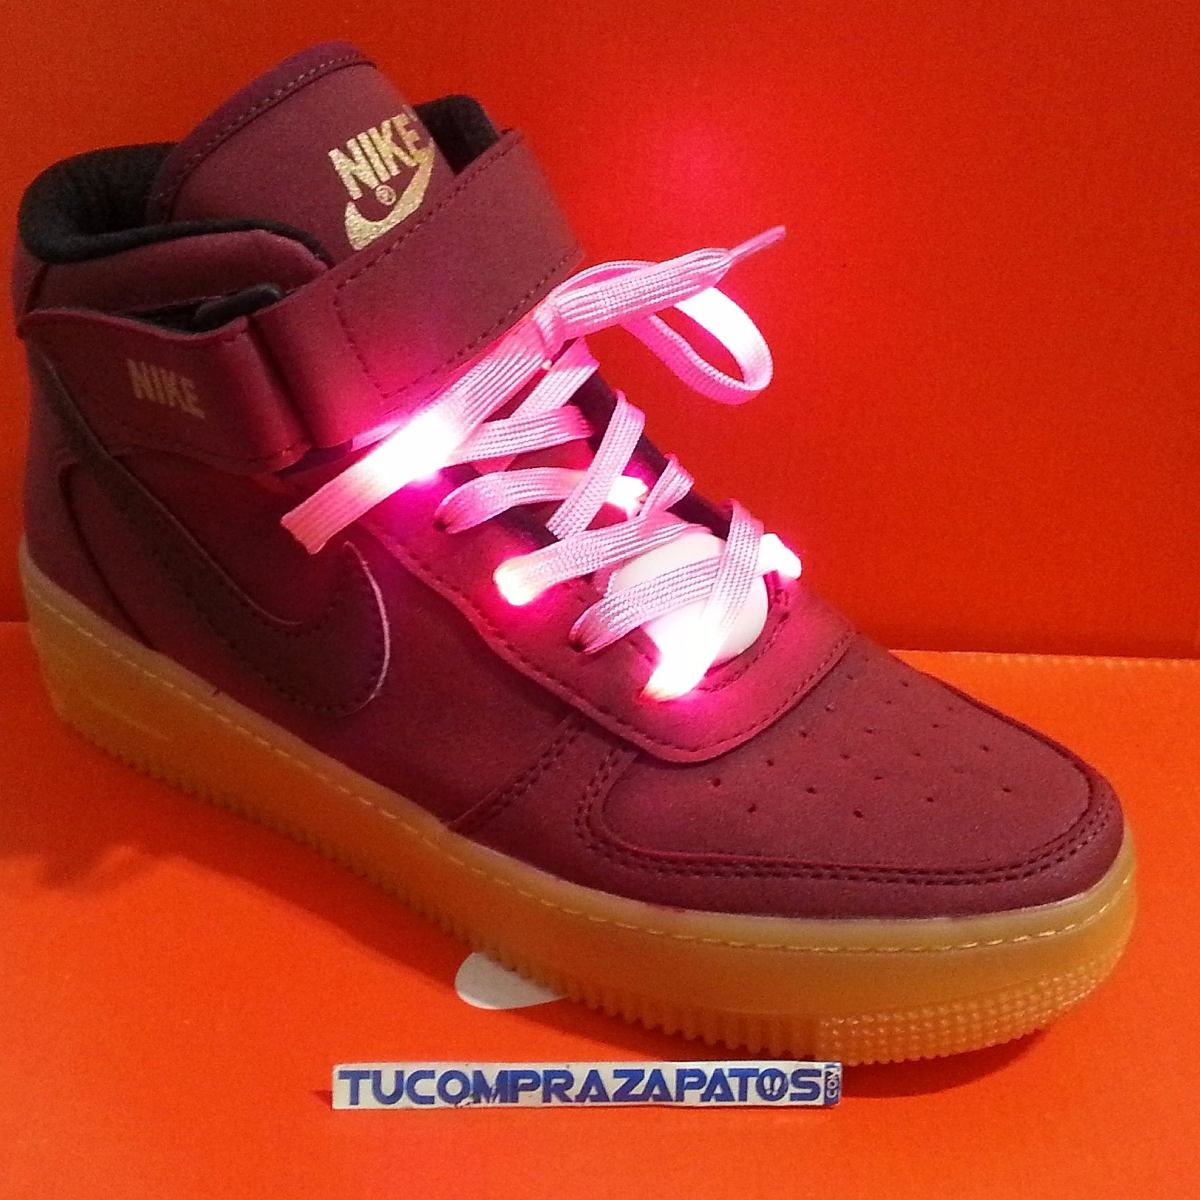 Nike Zapatos Led Y 0 Caballero Bs Force Para Trenzas Dama 20 One ATFw66qg